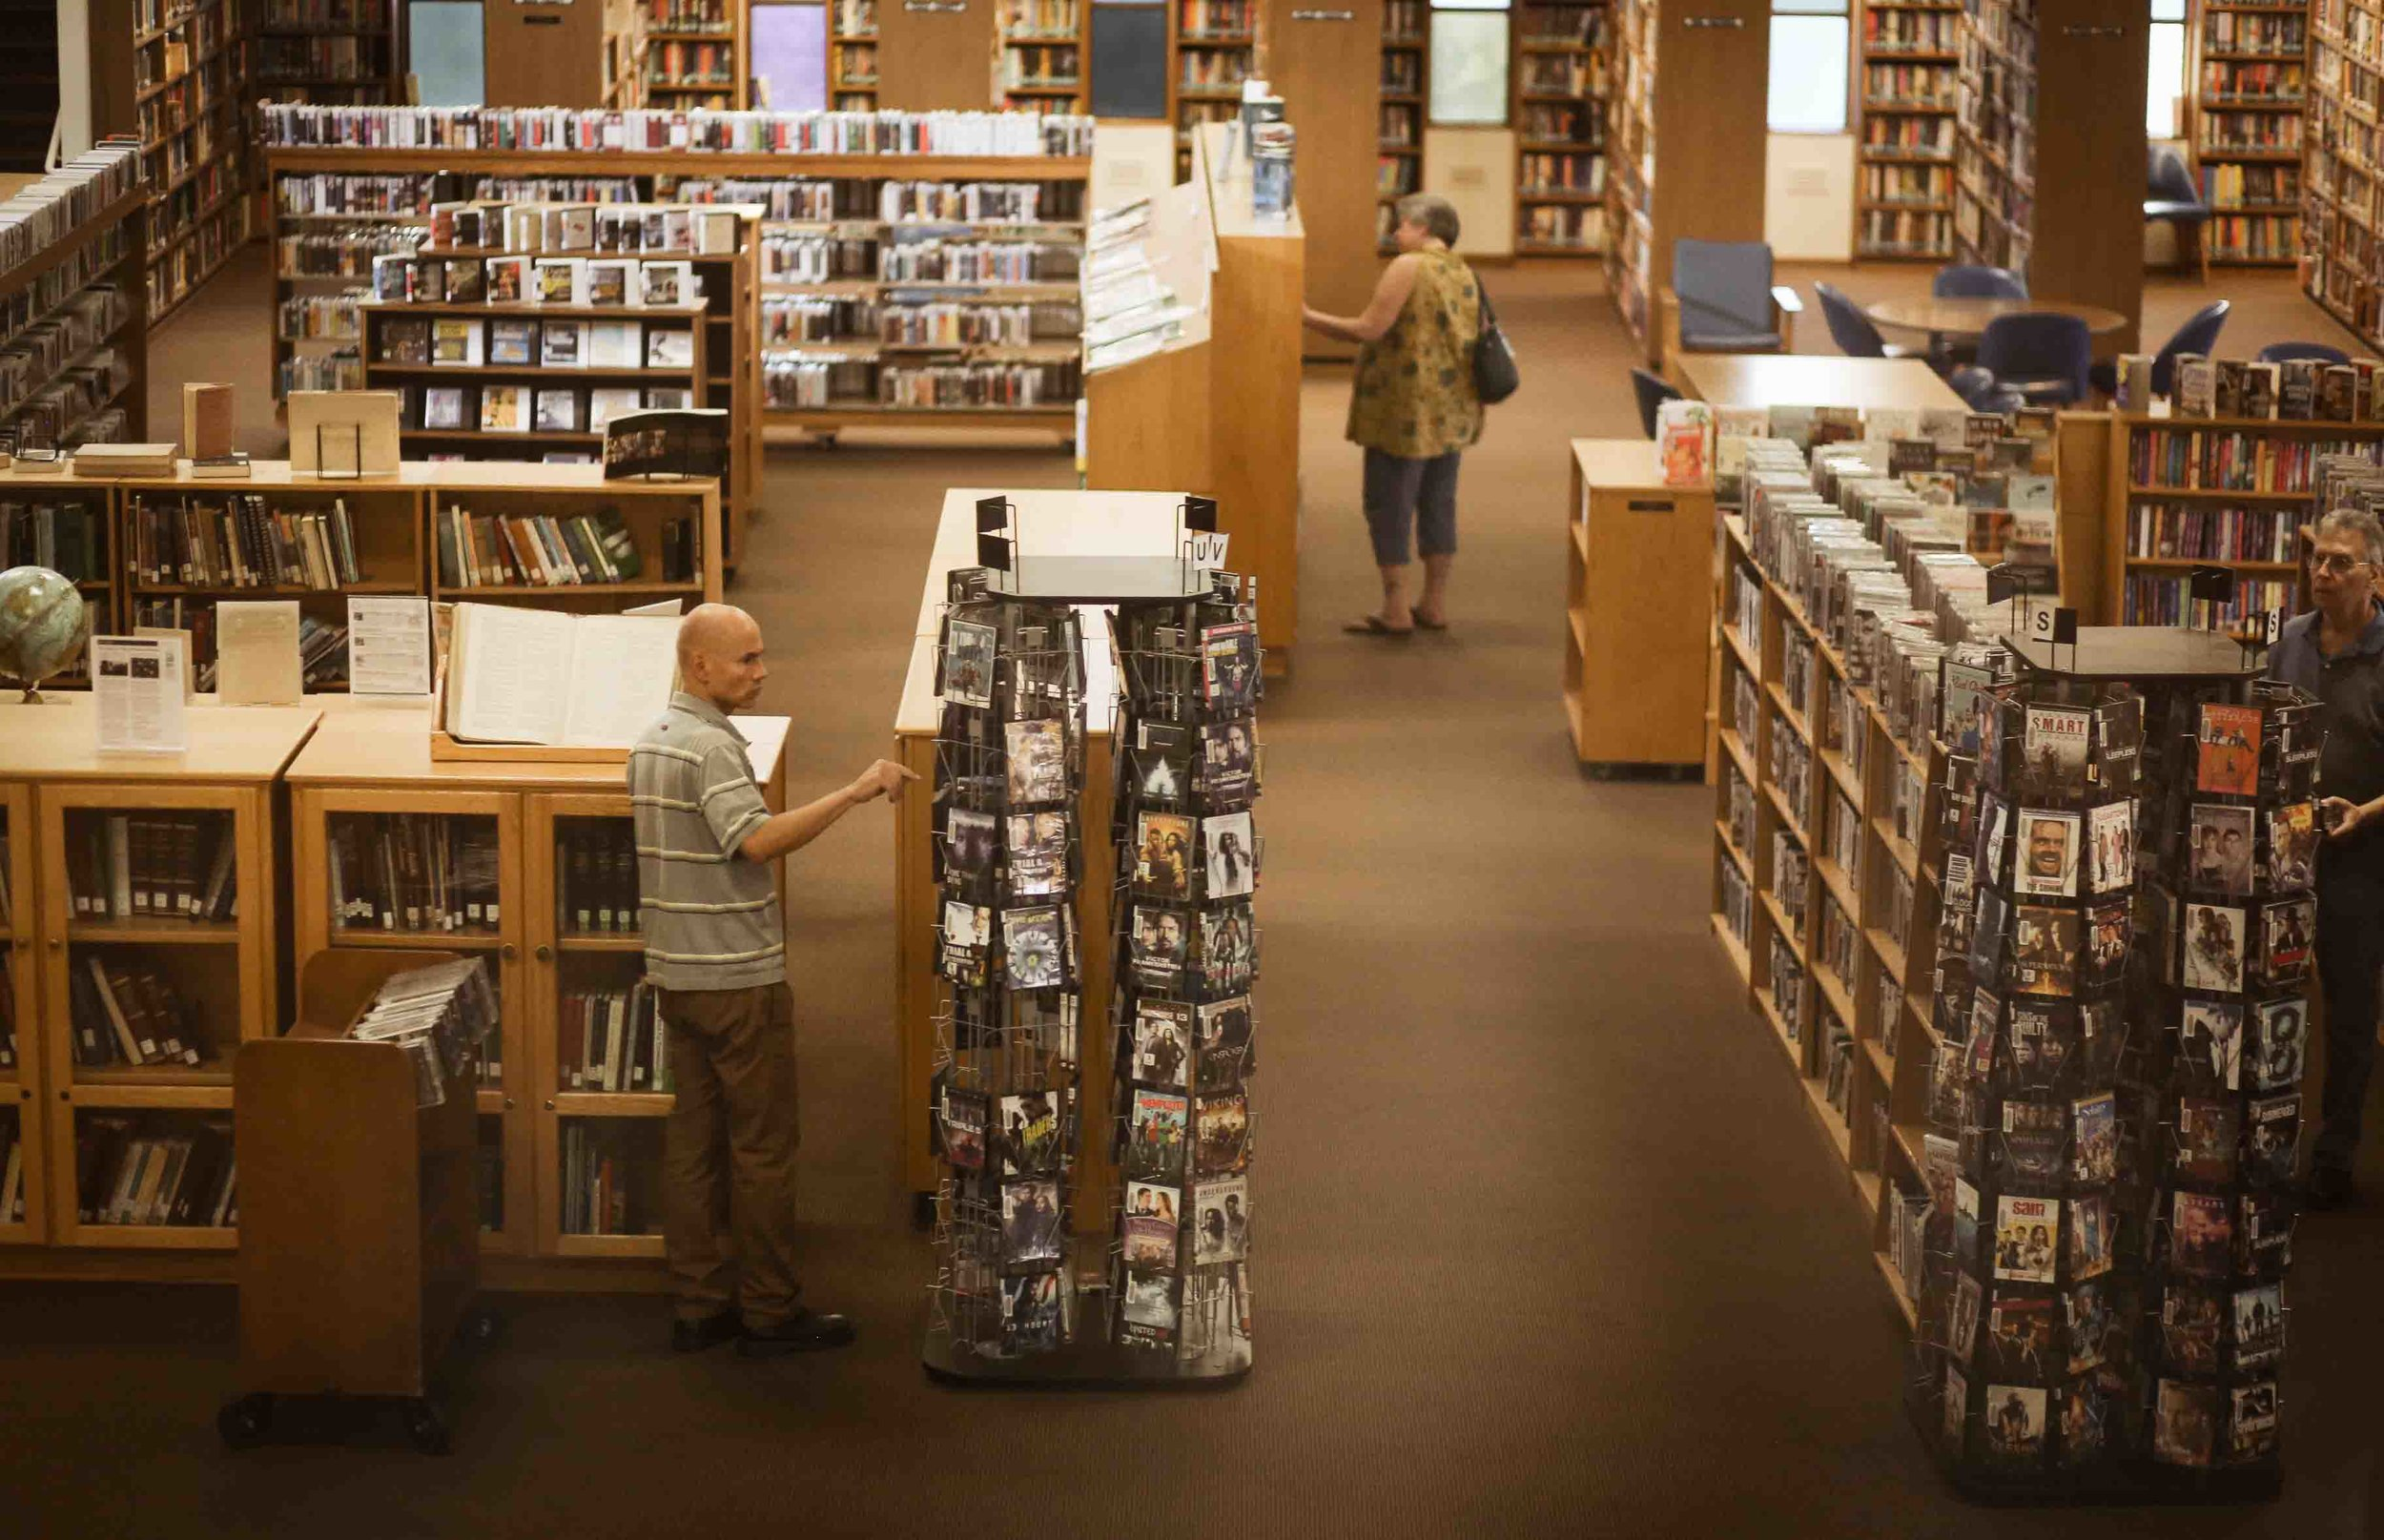 Library The Dalles Southern Wasco County Dufur Read Books Book Club Services Children Kids Teen Adult Outreach Gorge Forge Mystery PRIDE Sci-fi Brews Wargaming Lego Robotics News Blog_-35.jpg